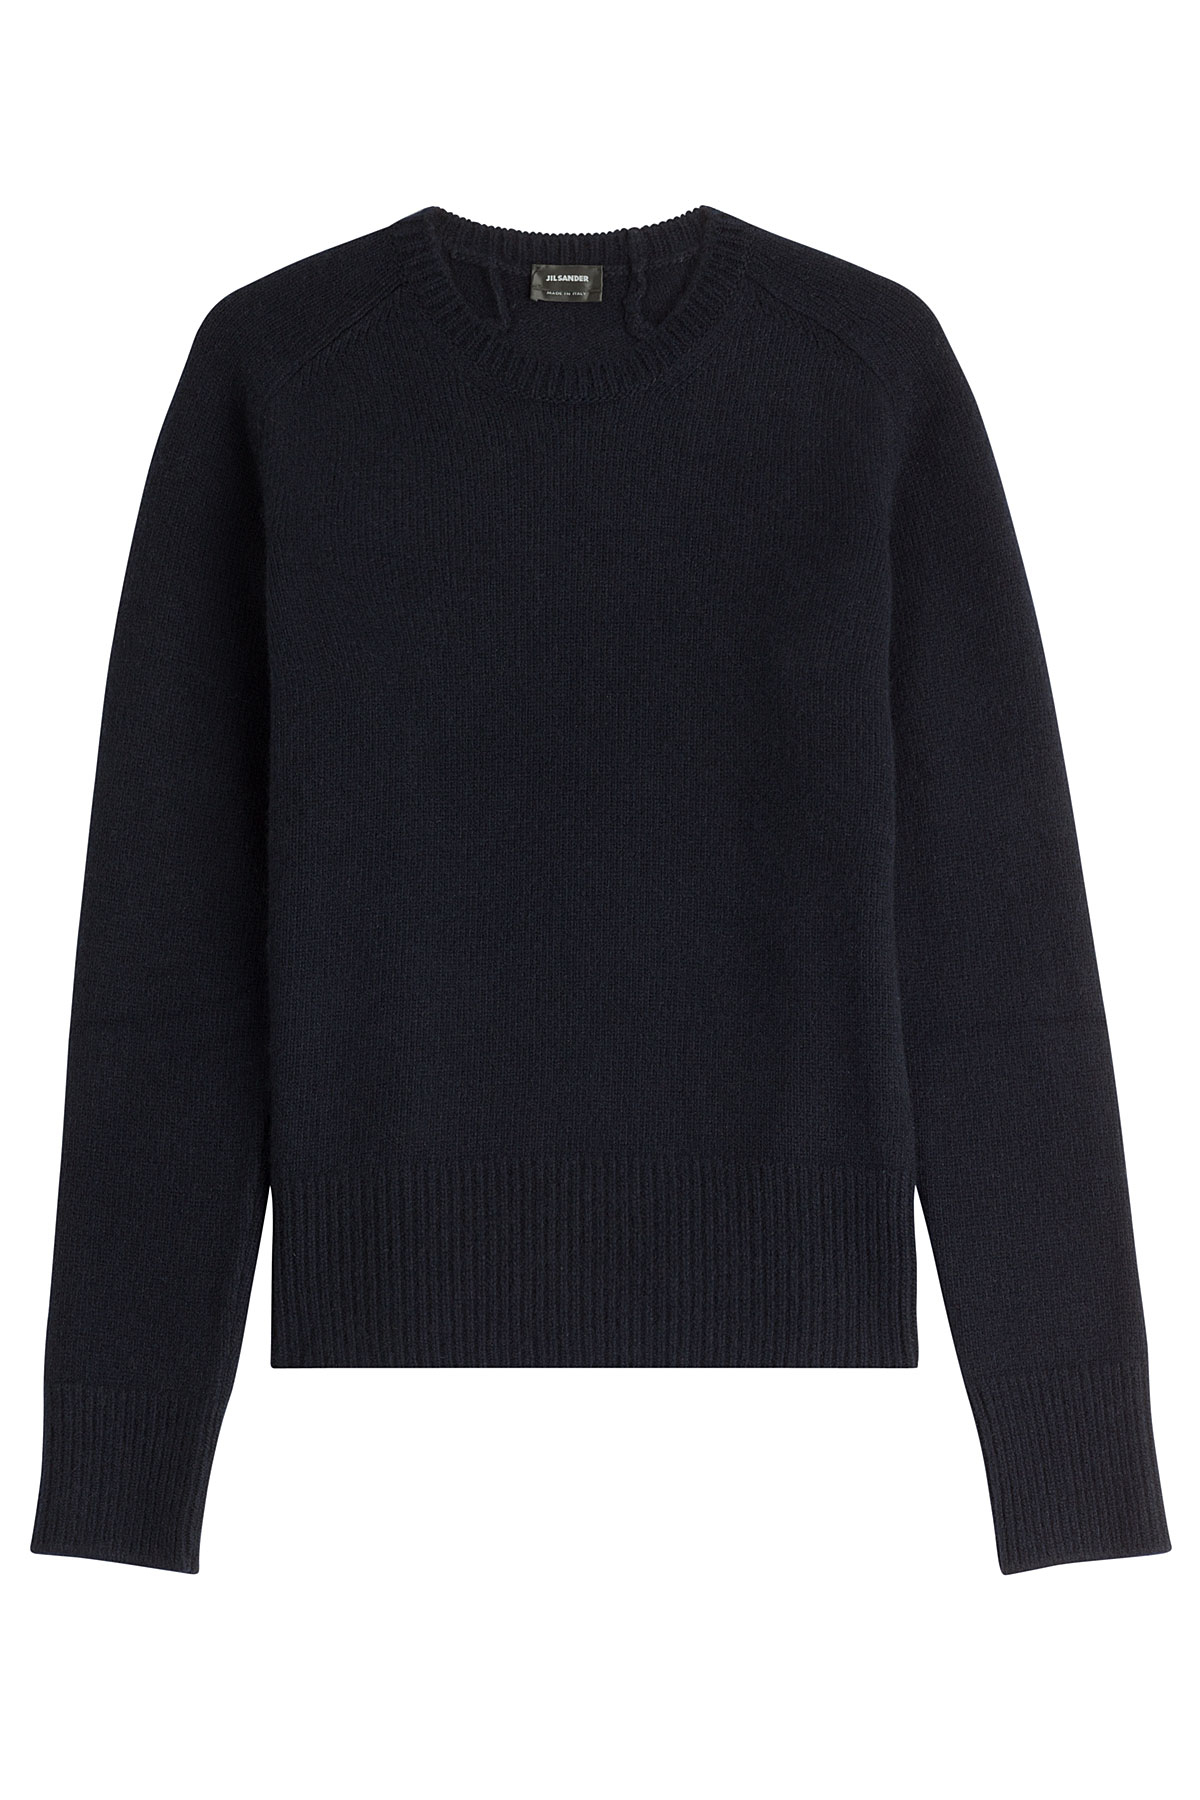 jil sander cashmere pullover blue in blue for men lyst. Black Bedroom Furniture Sets. Home Design Ideas